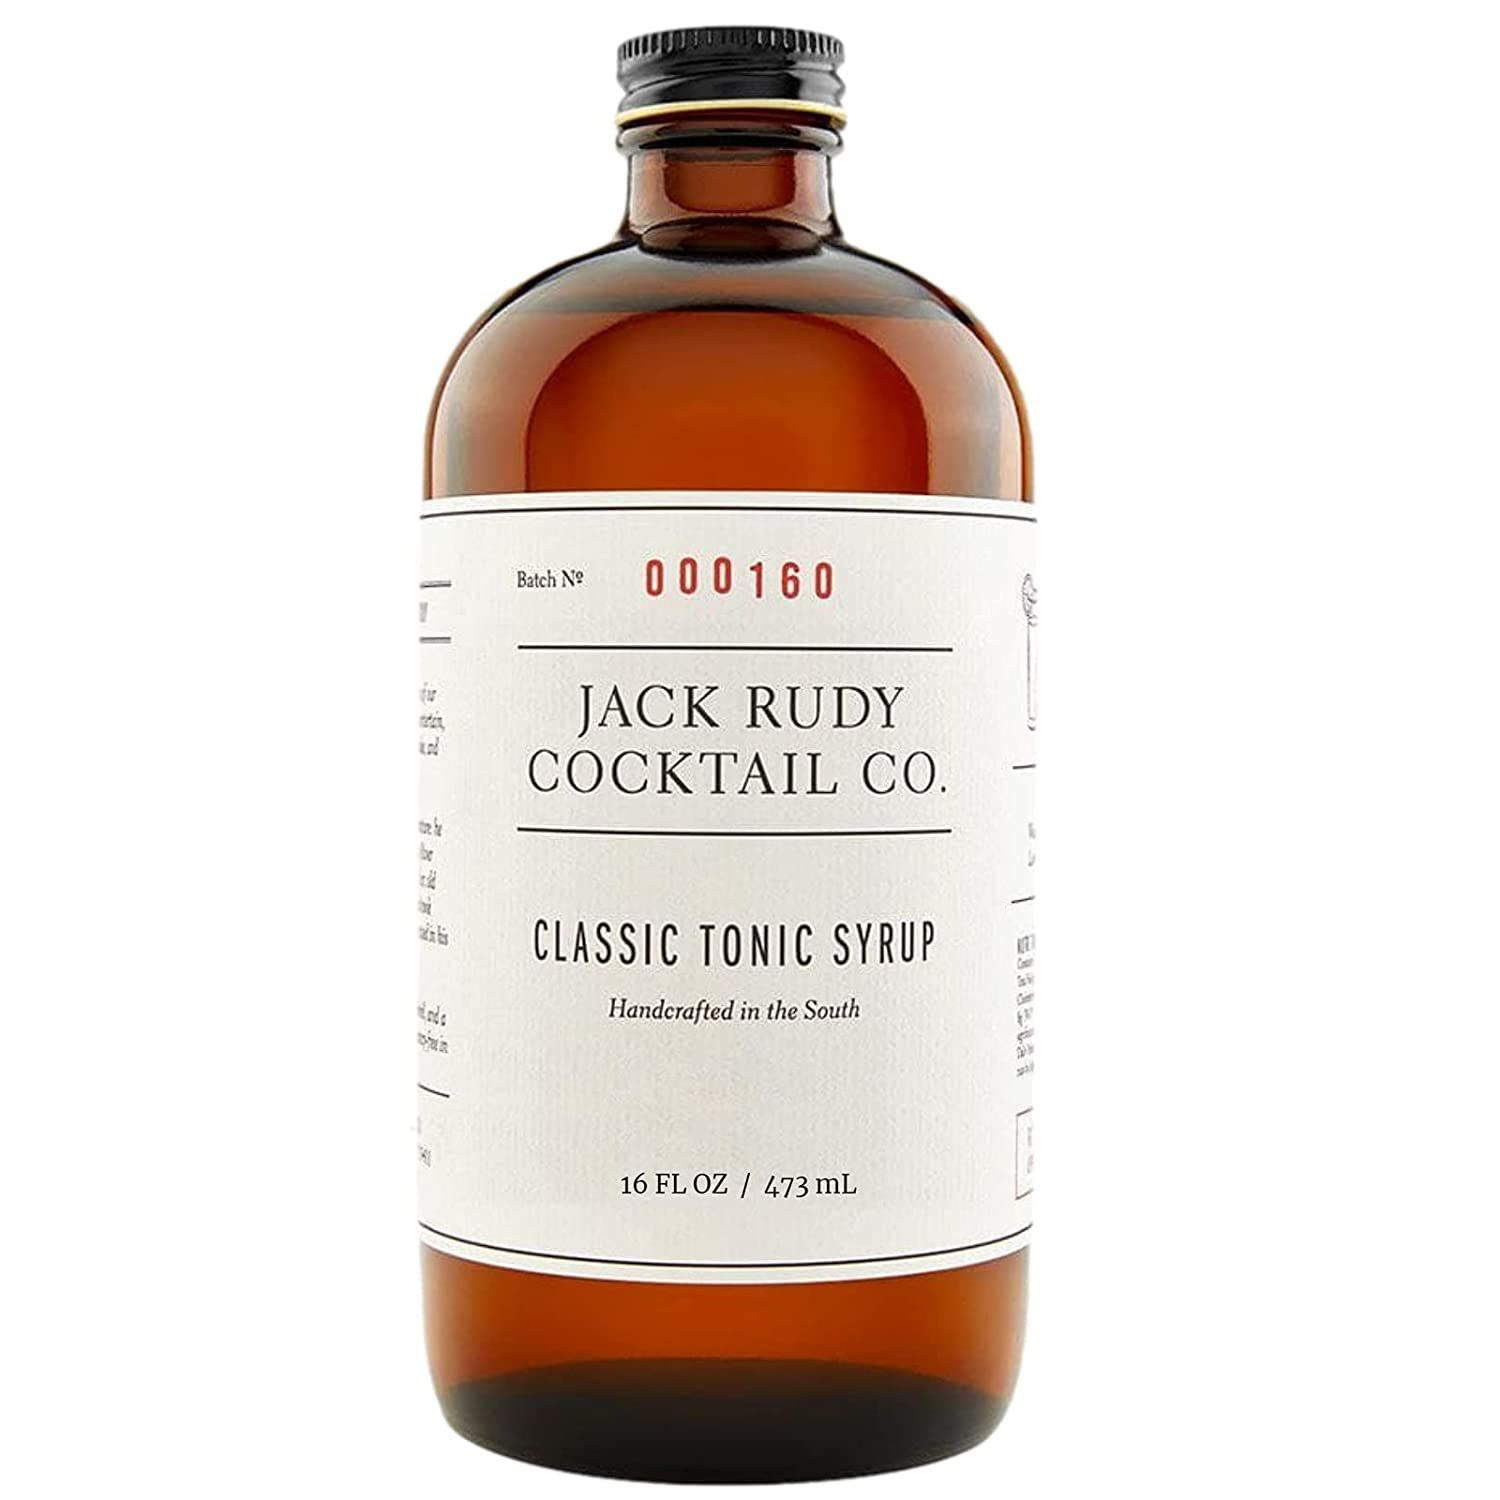 JACK RUDY COCKTAIL CO Classic Tonic Syrup